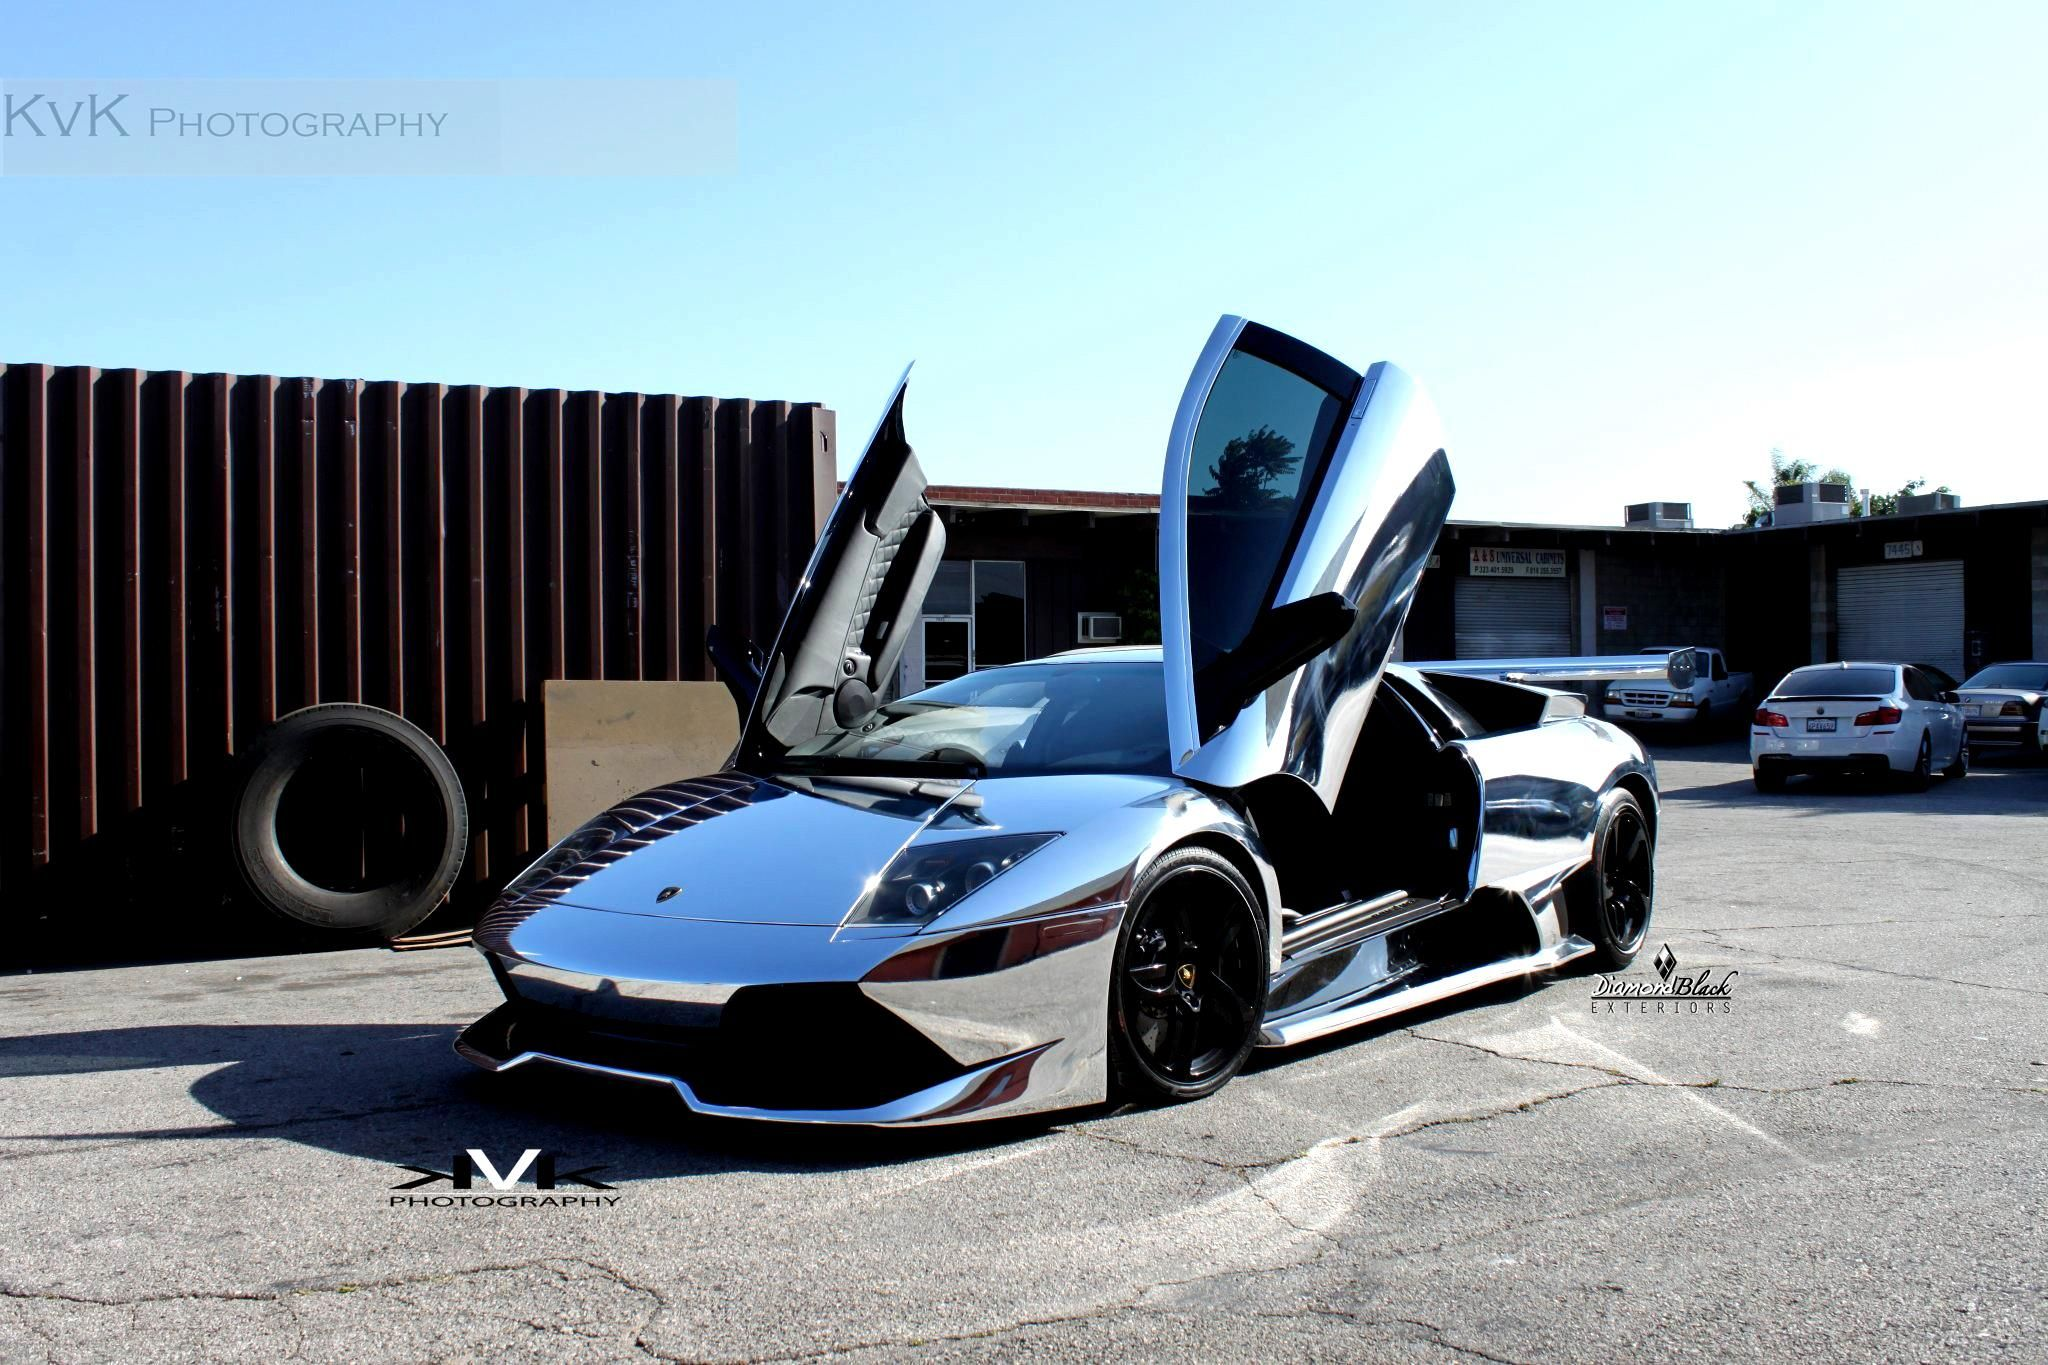 This car is my favorite this is the lamborghini murcielago with a custom paint job